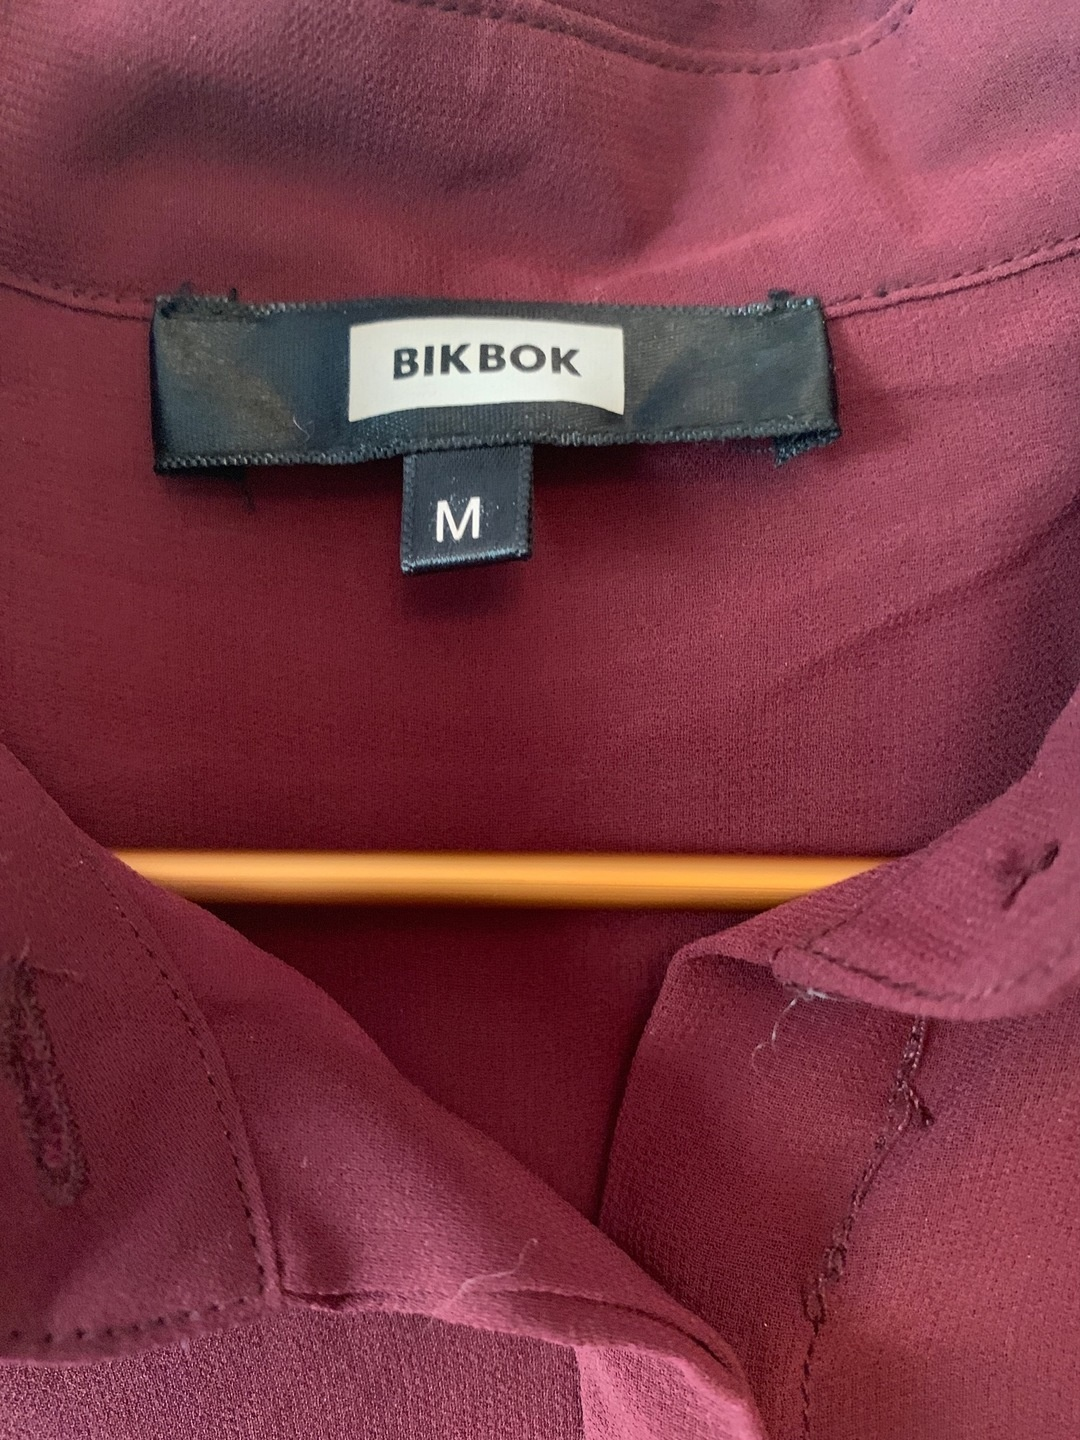 Women's tops & t-shirts - BIK BOK photo 4